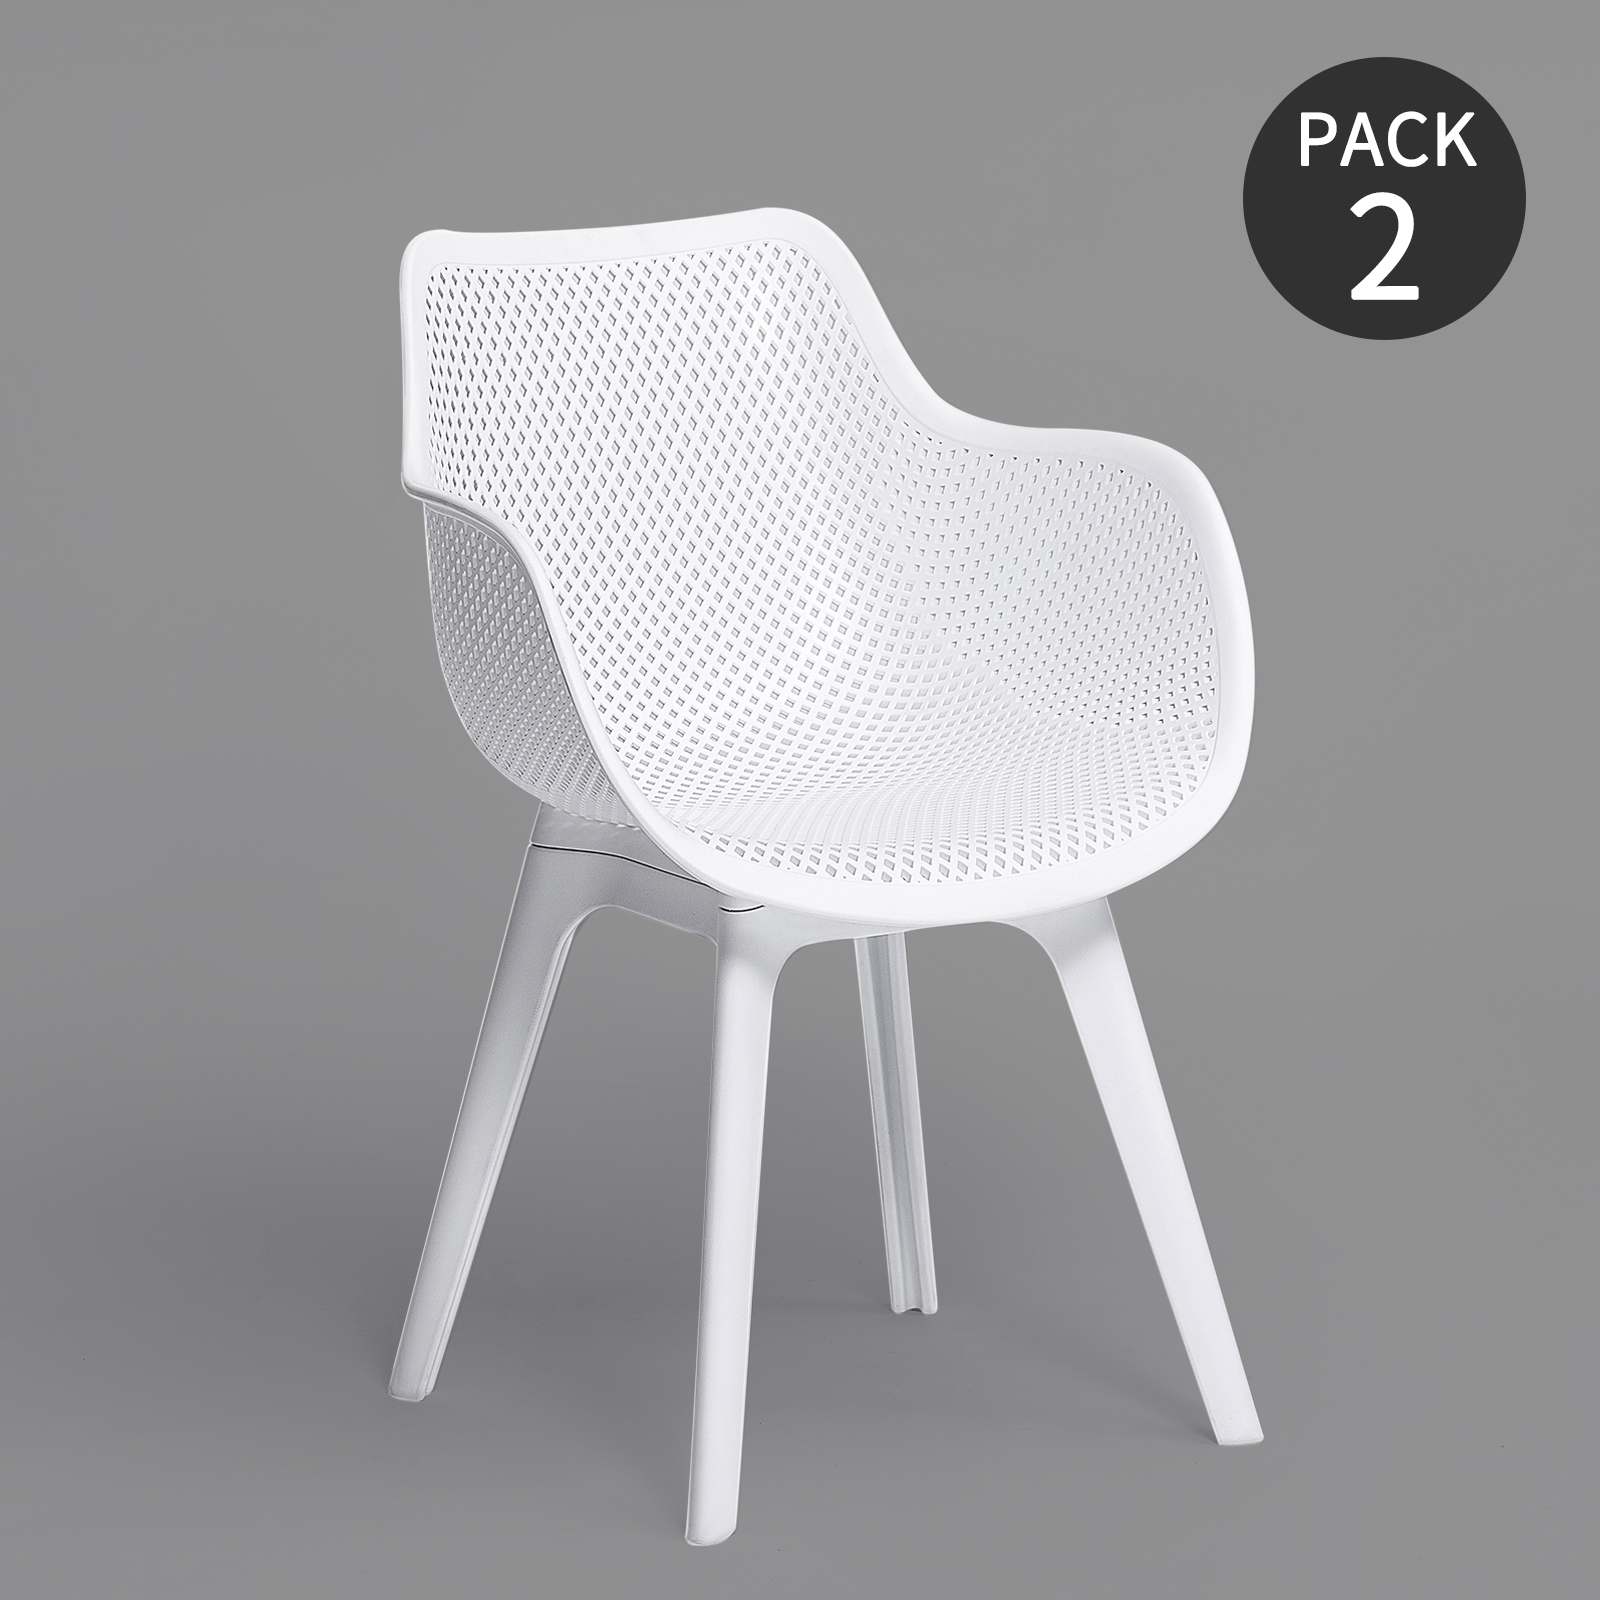 Furgle Retro 2Pcs Dining Chair Vanity Chair with Polyester Legs for Room Kitchen Chair Scandinavian Style Comfortable Bowl Shape